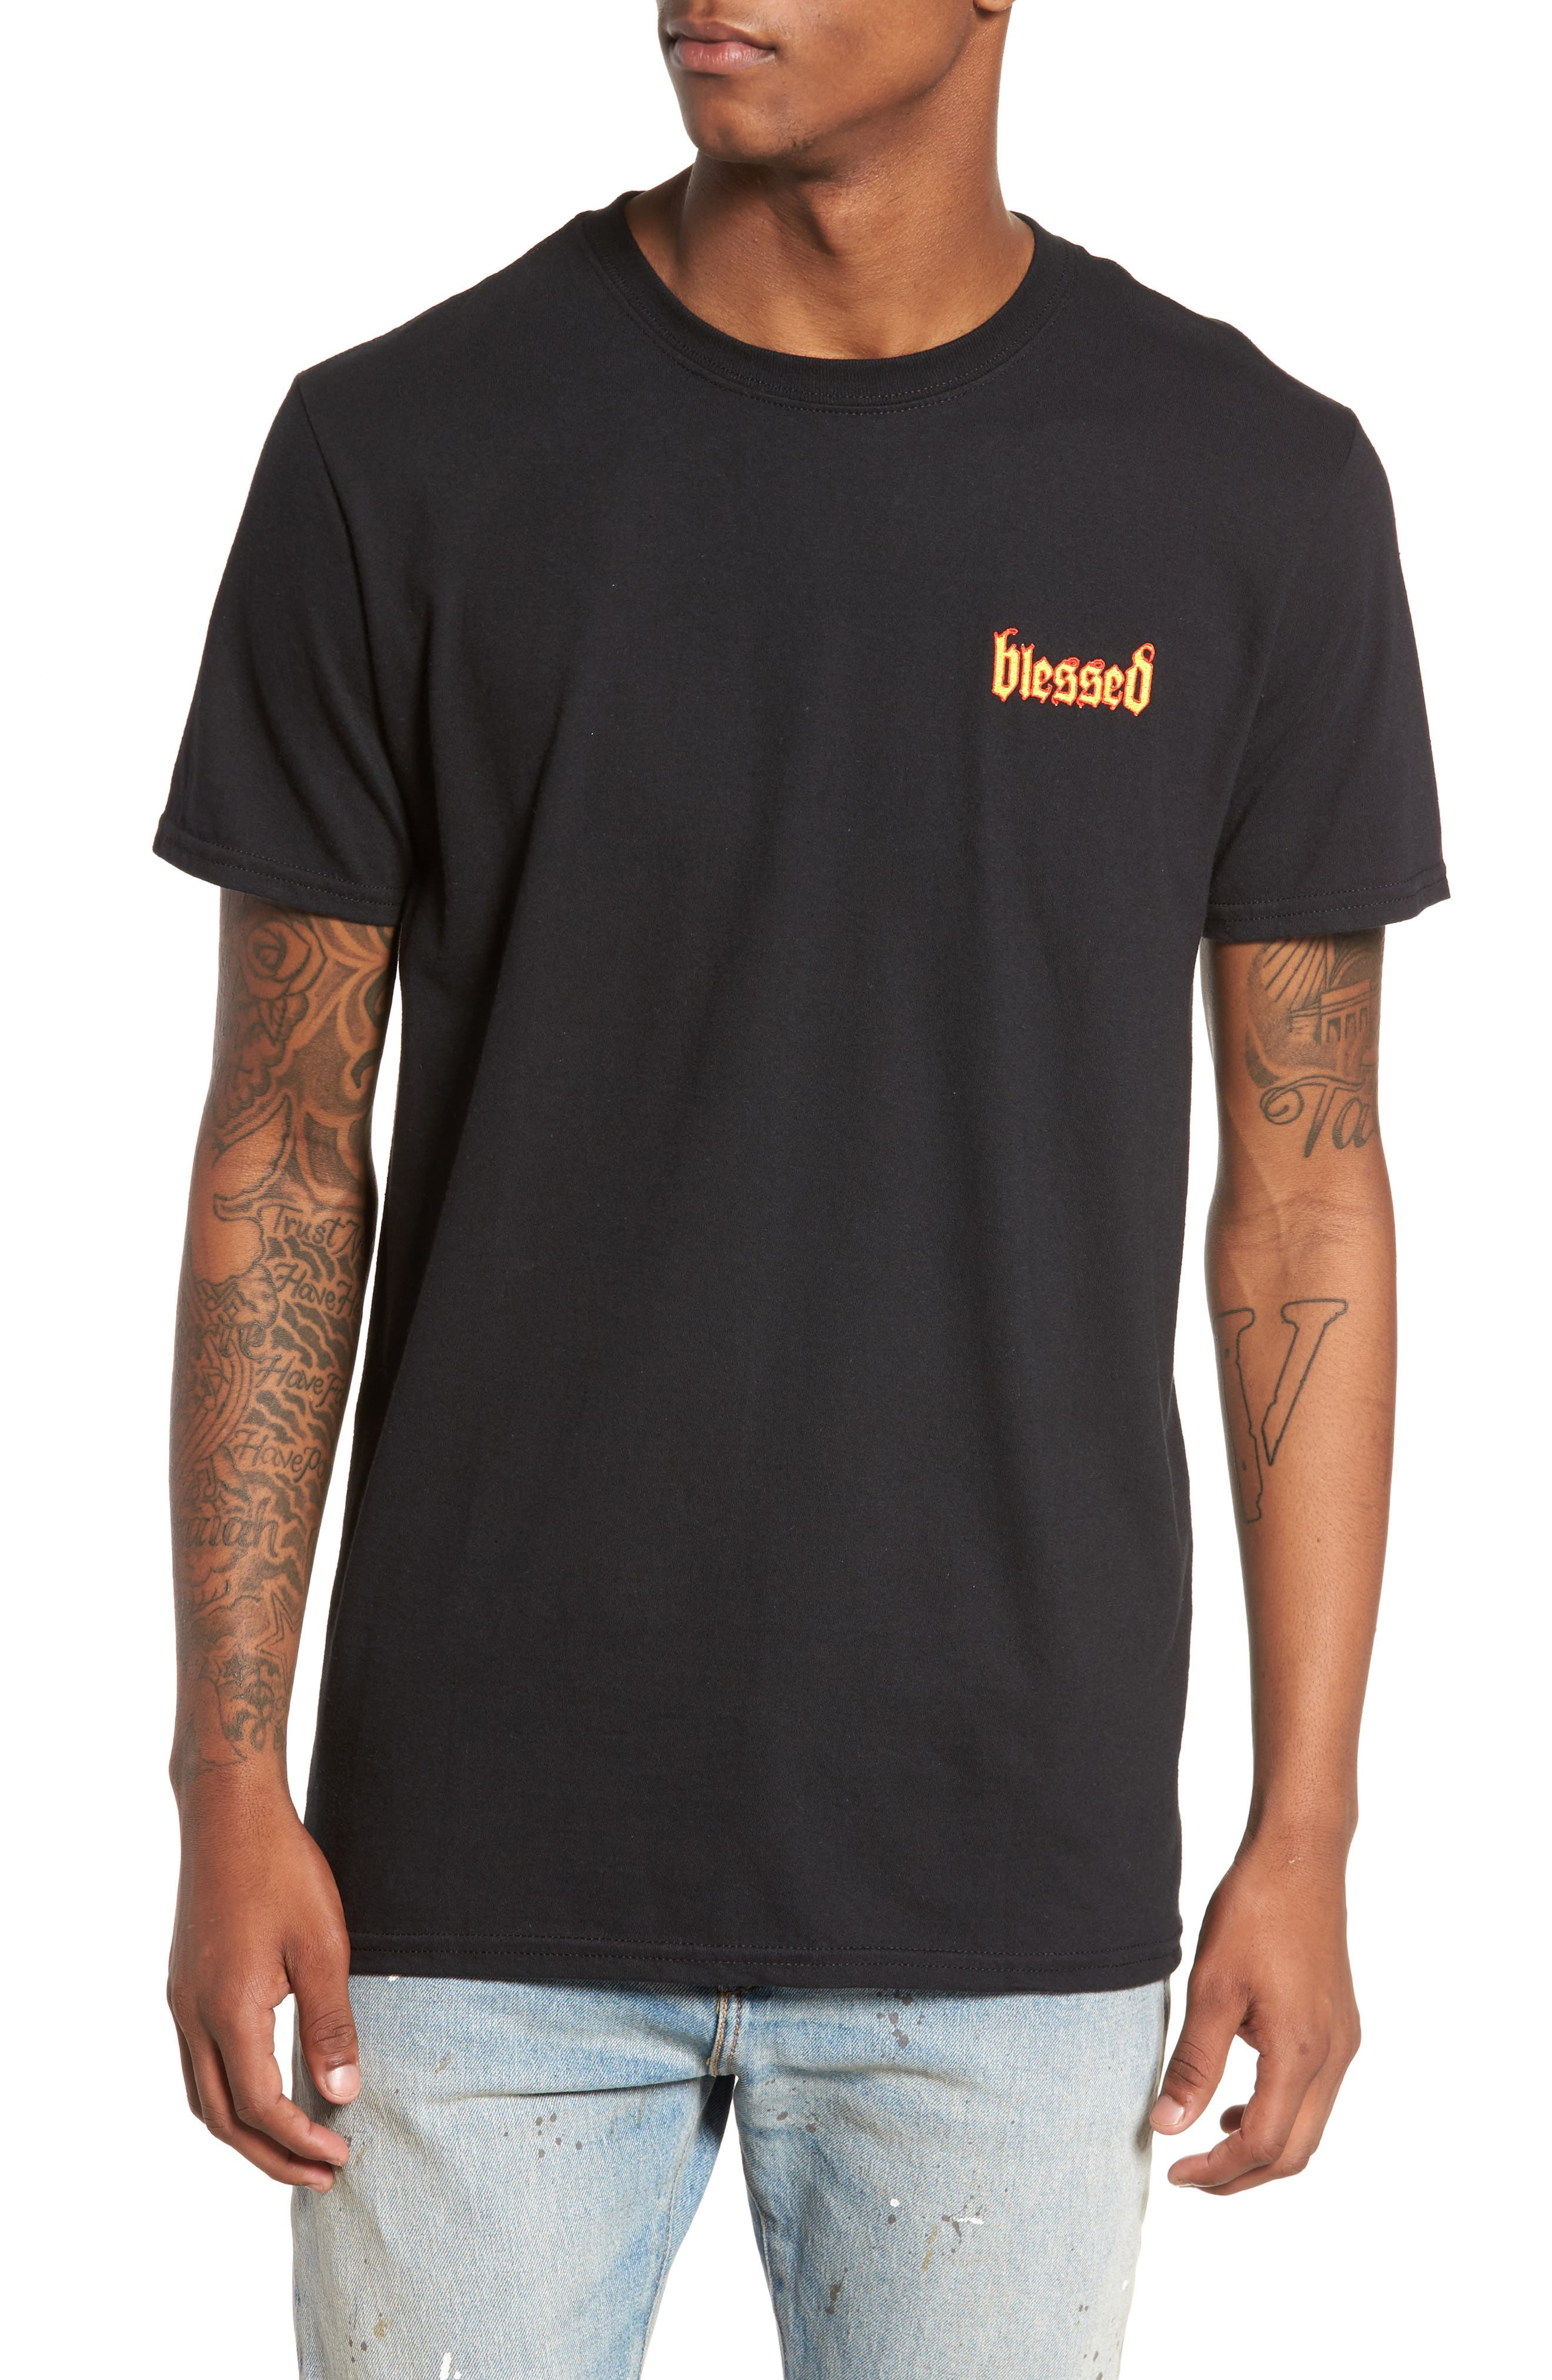 The Rail Blessed T-Shirt